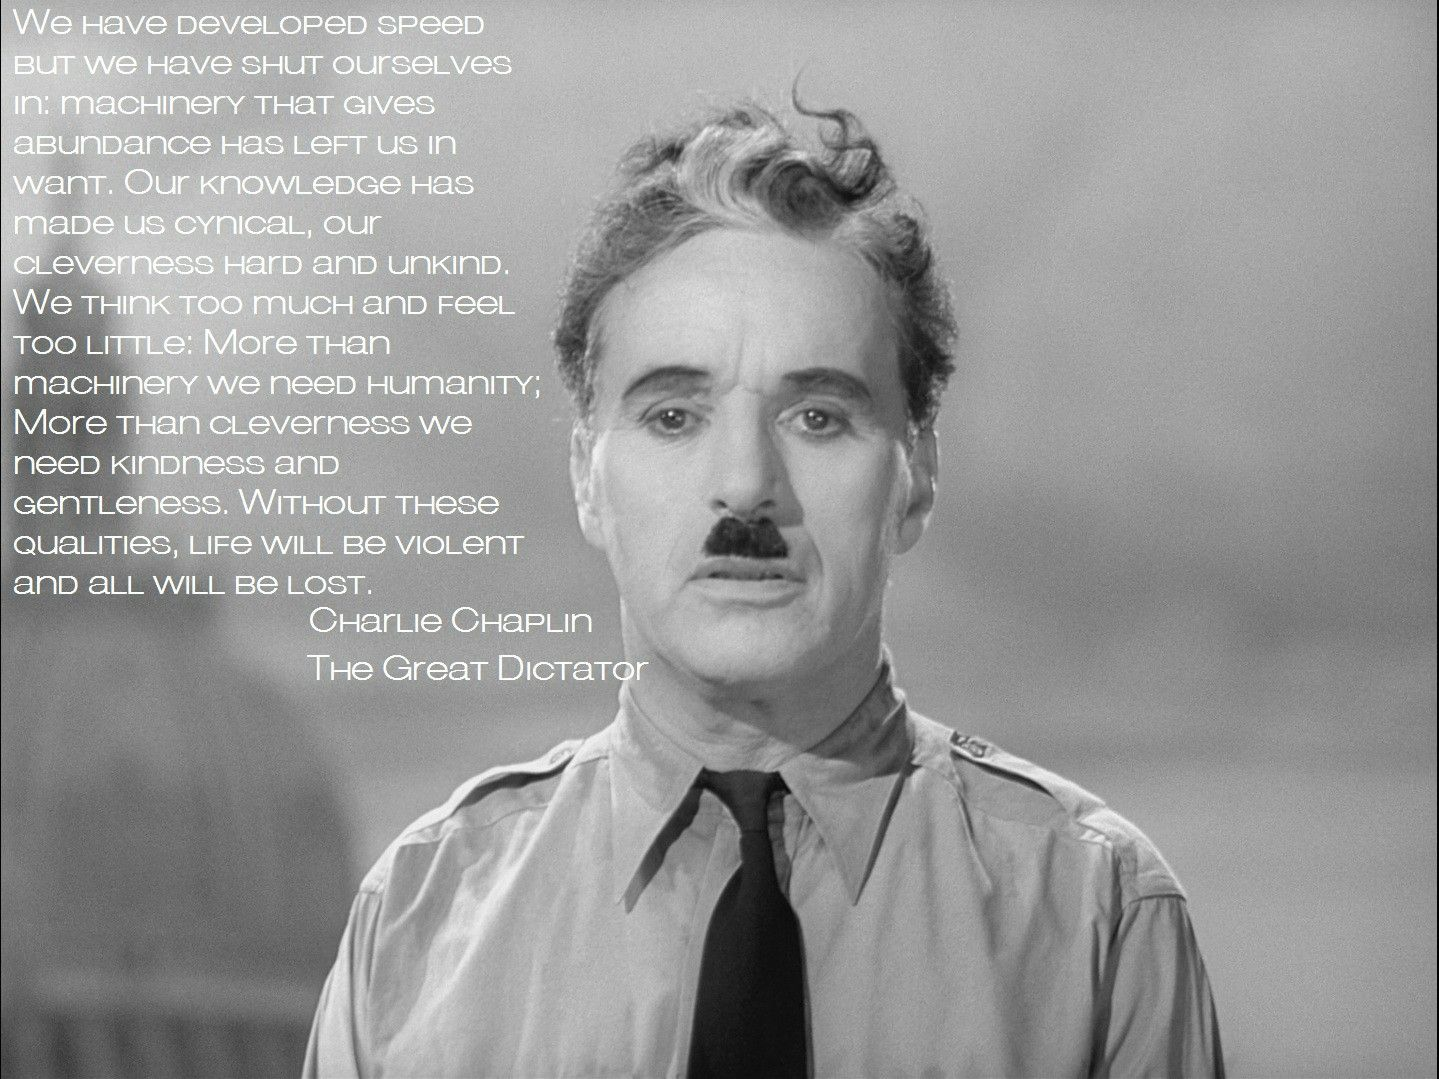 Charlie Chaplin in The Great Dictator.